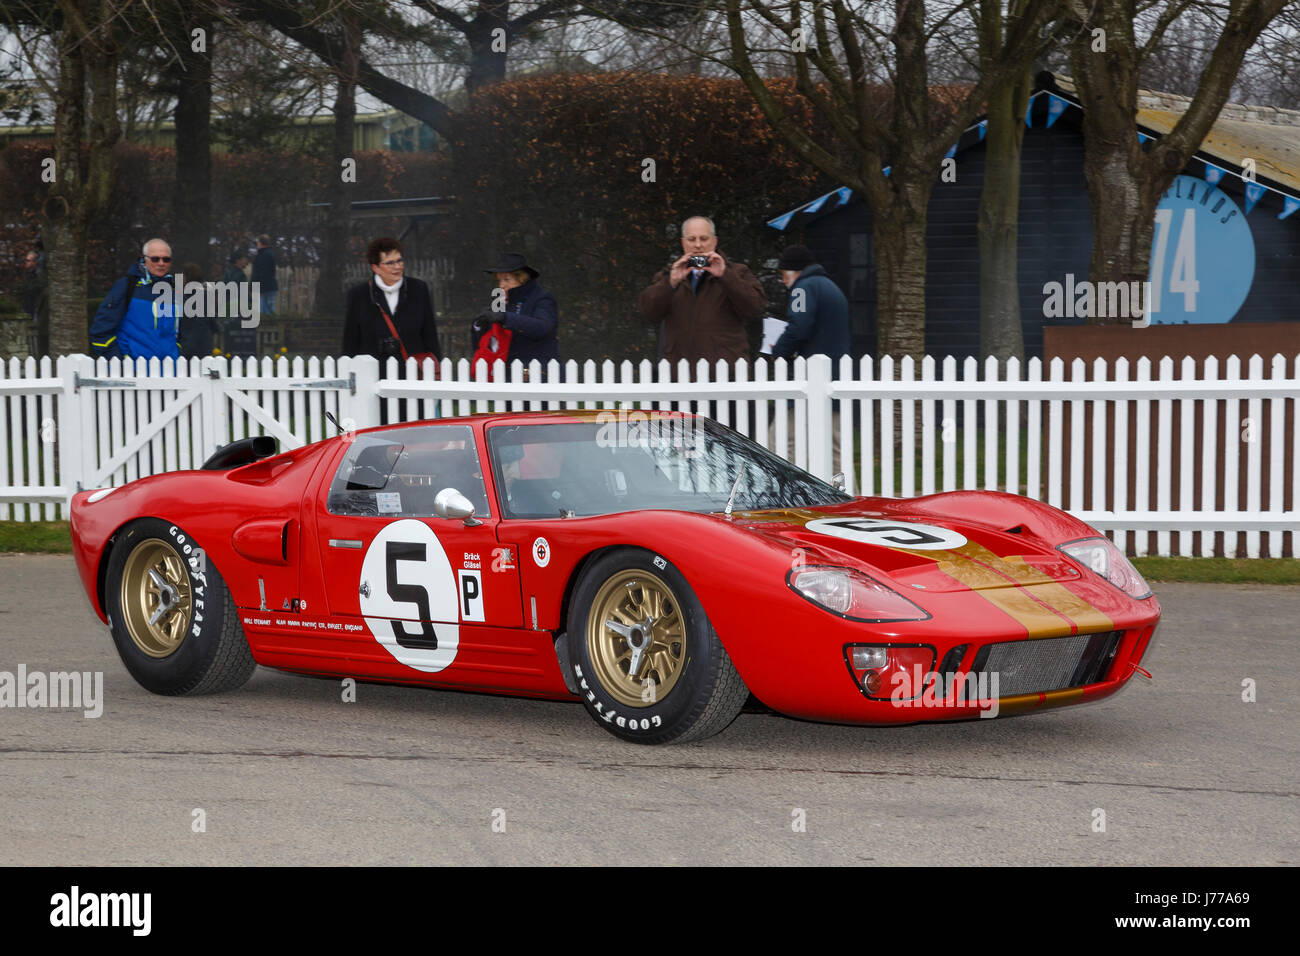 1966 Ford GT40 of Kenny Brack and Christian Glasel in the paddock at Goodwood GRRC 74th Members Meeting, Sussex, Stock Photo